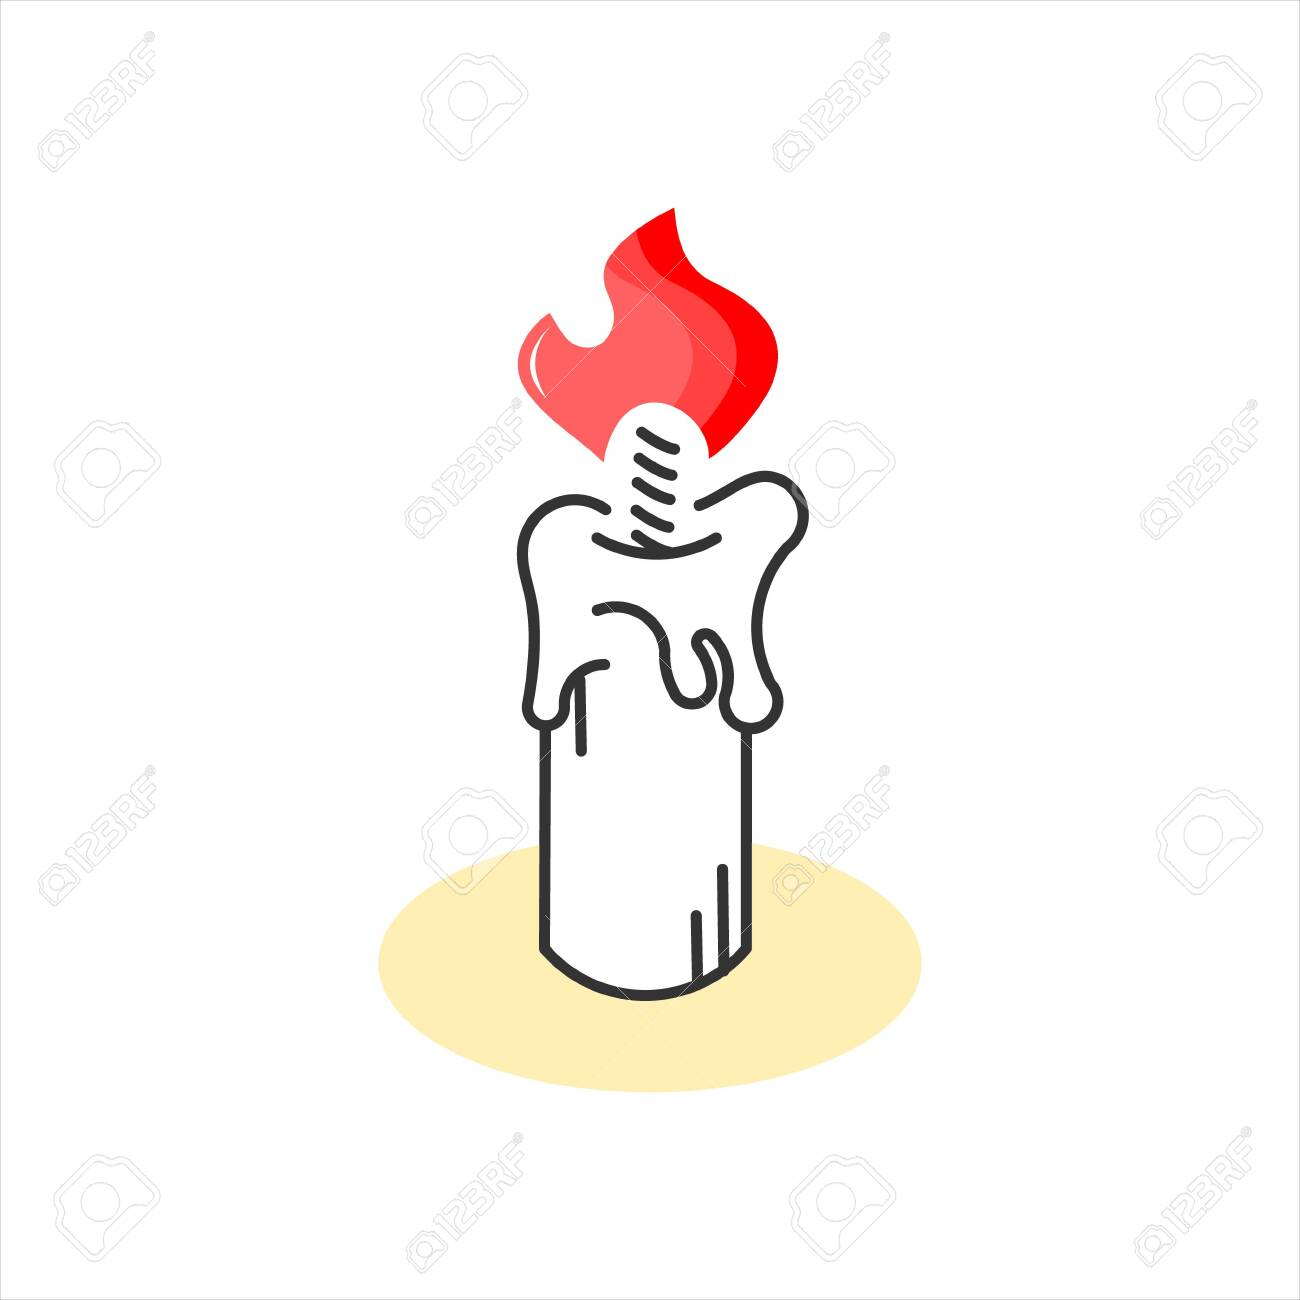 Candle Sticker Cartoon Design Template Idea Best For Print Art Royalty Free Cliparts Vectors And Stock Illustration Image 156442374